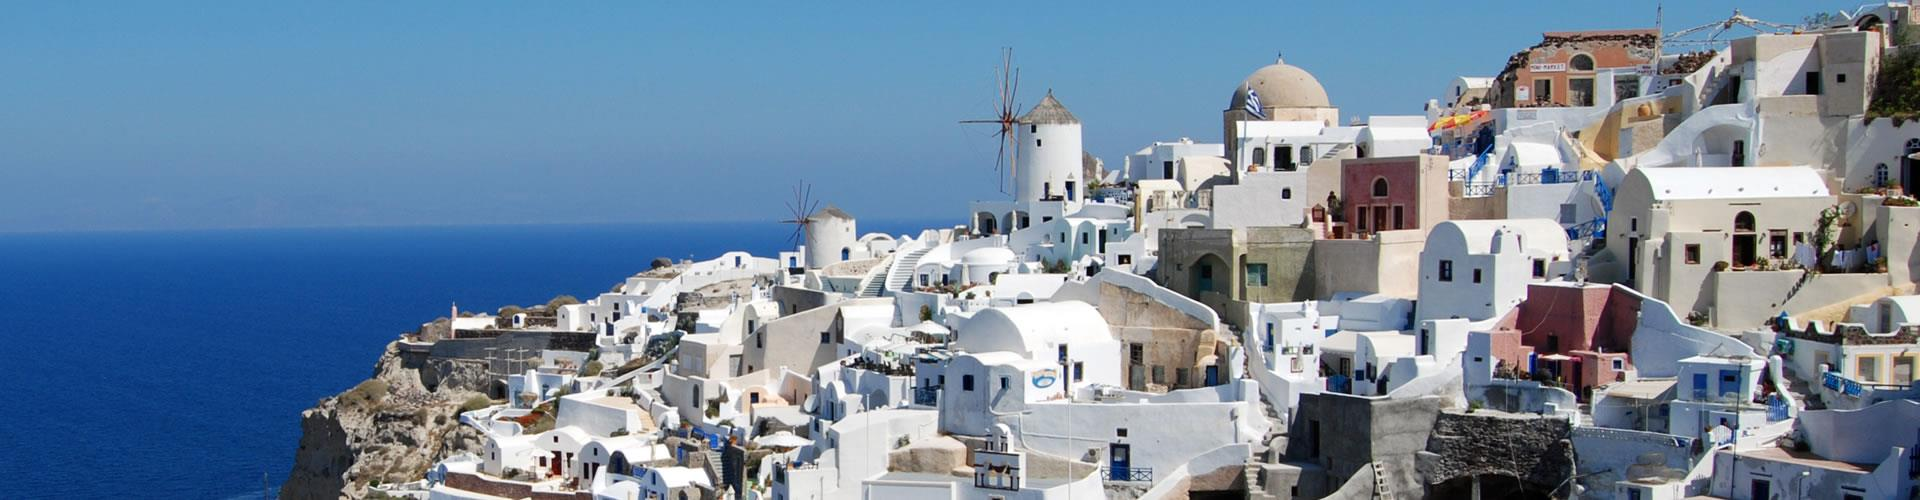 Why are most houses white painted in Santorini?